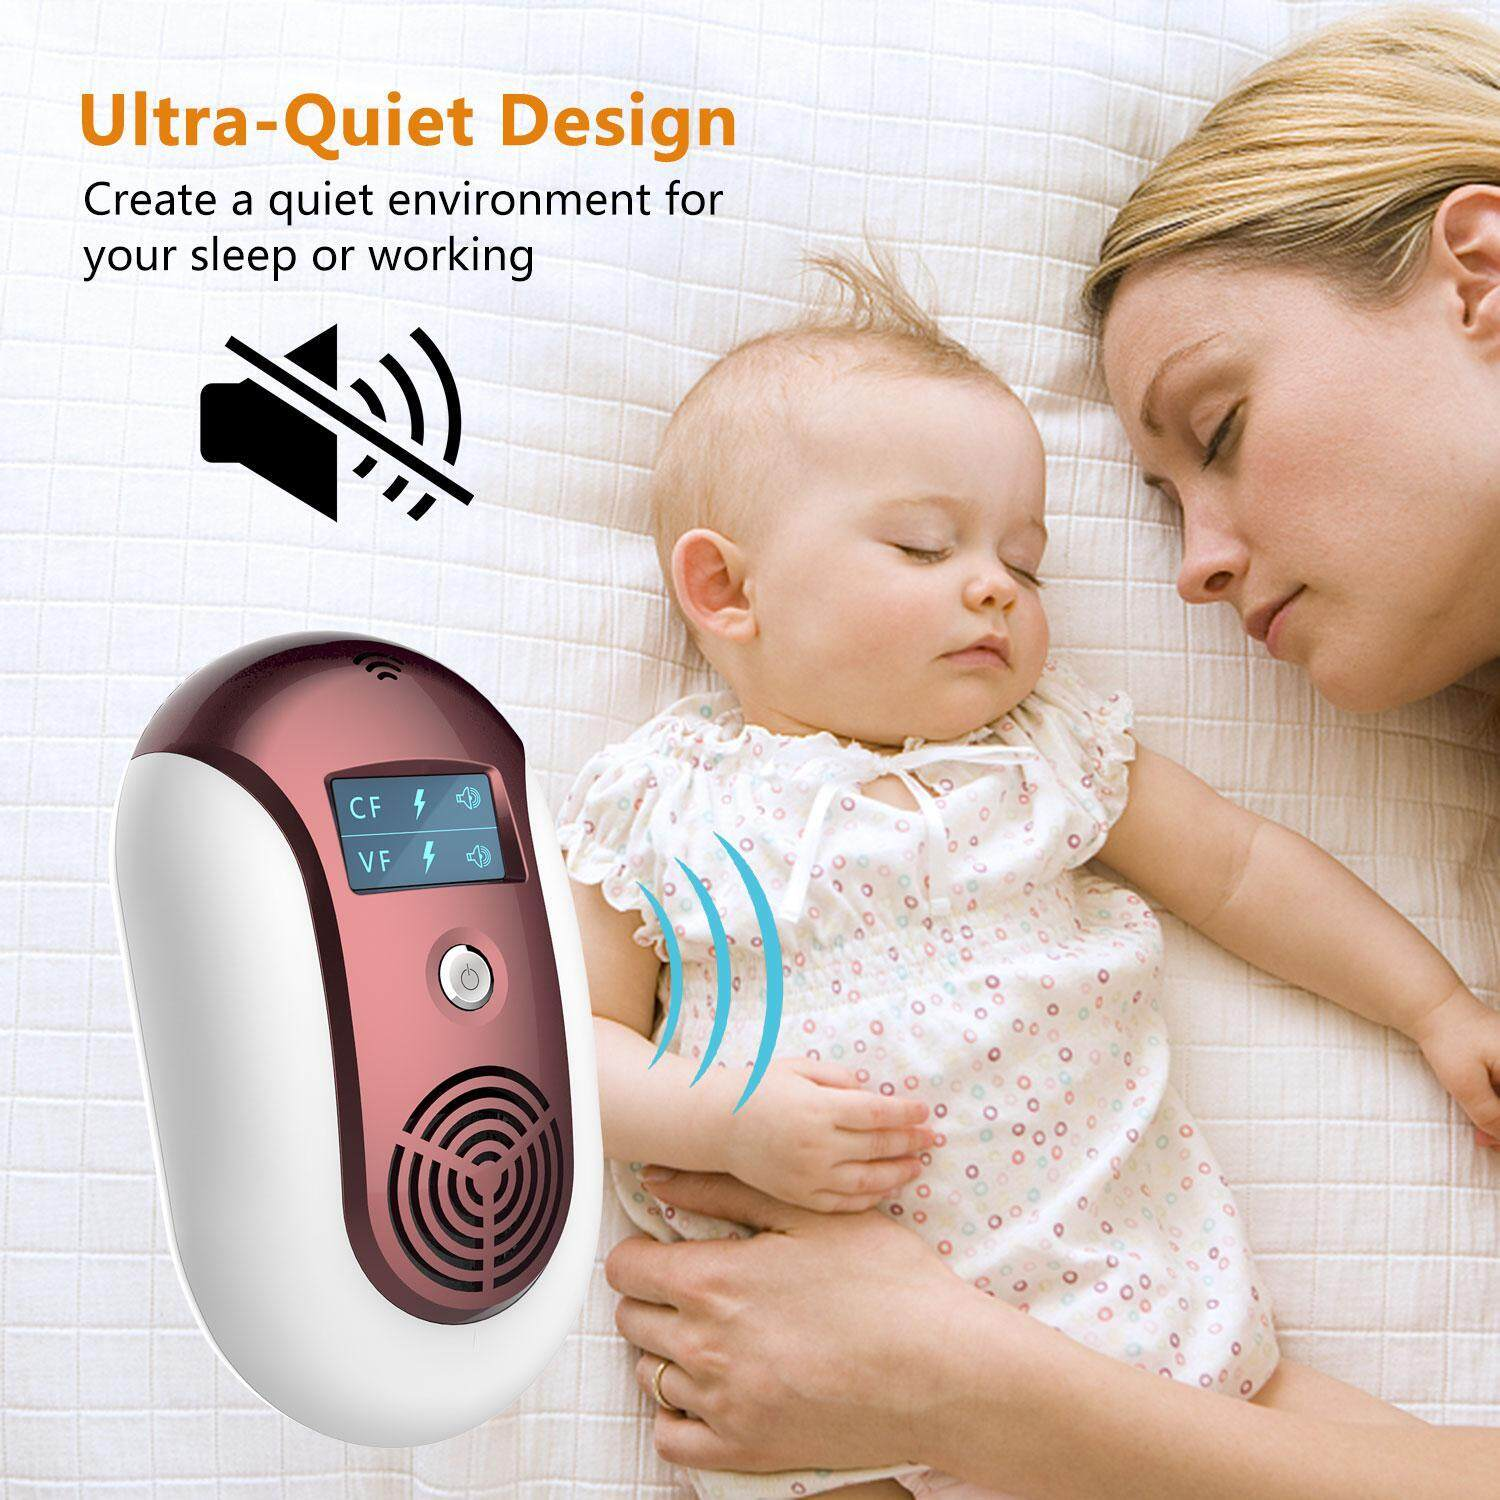 leegoal Mosquito Repellent, Electronic Ultrasonic Pest Repeller Variable Frequency Mouse Pest Repellent Effective Indoor Home Plug-in Bug Repellent Pest Control For Wasp Squirrel Cockroach(UK)